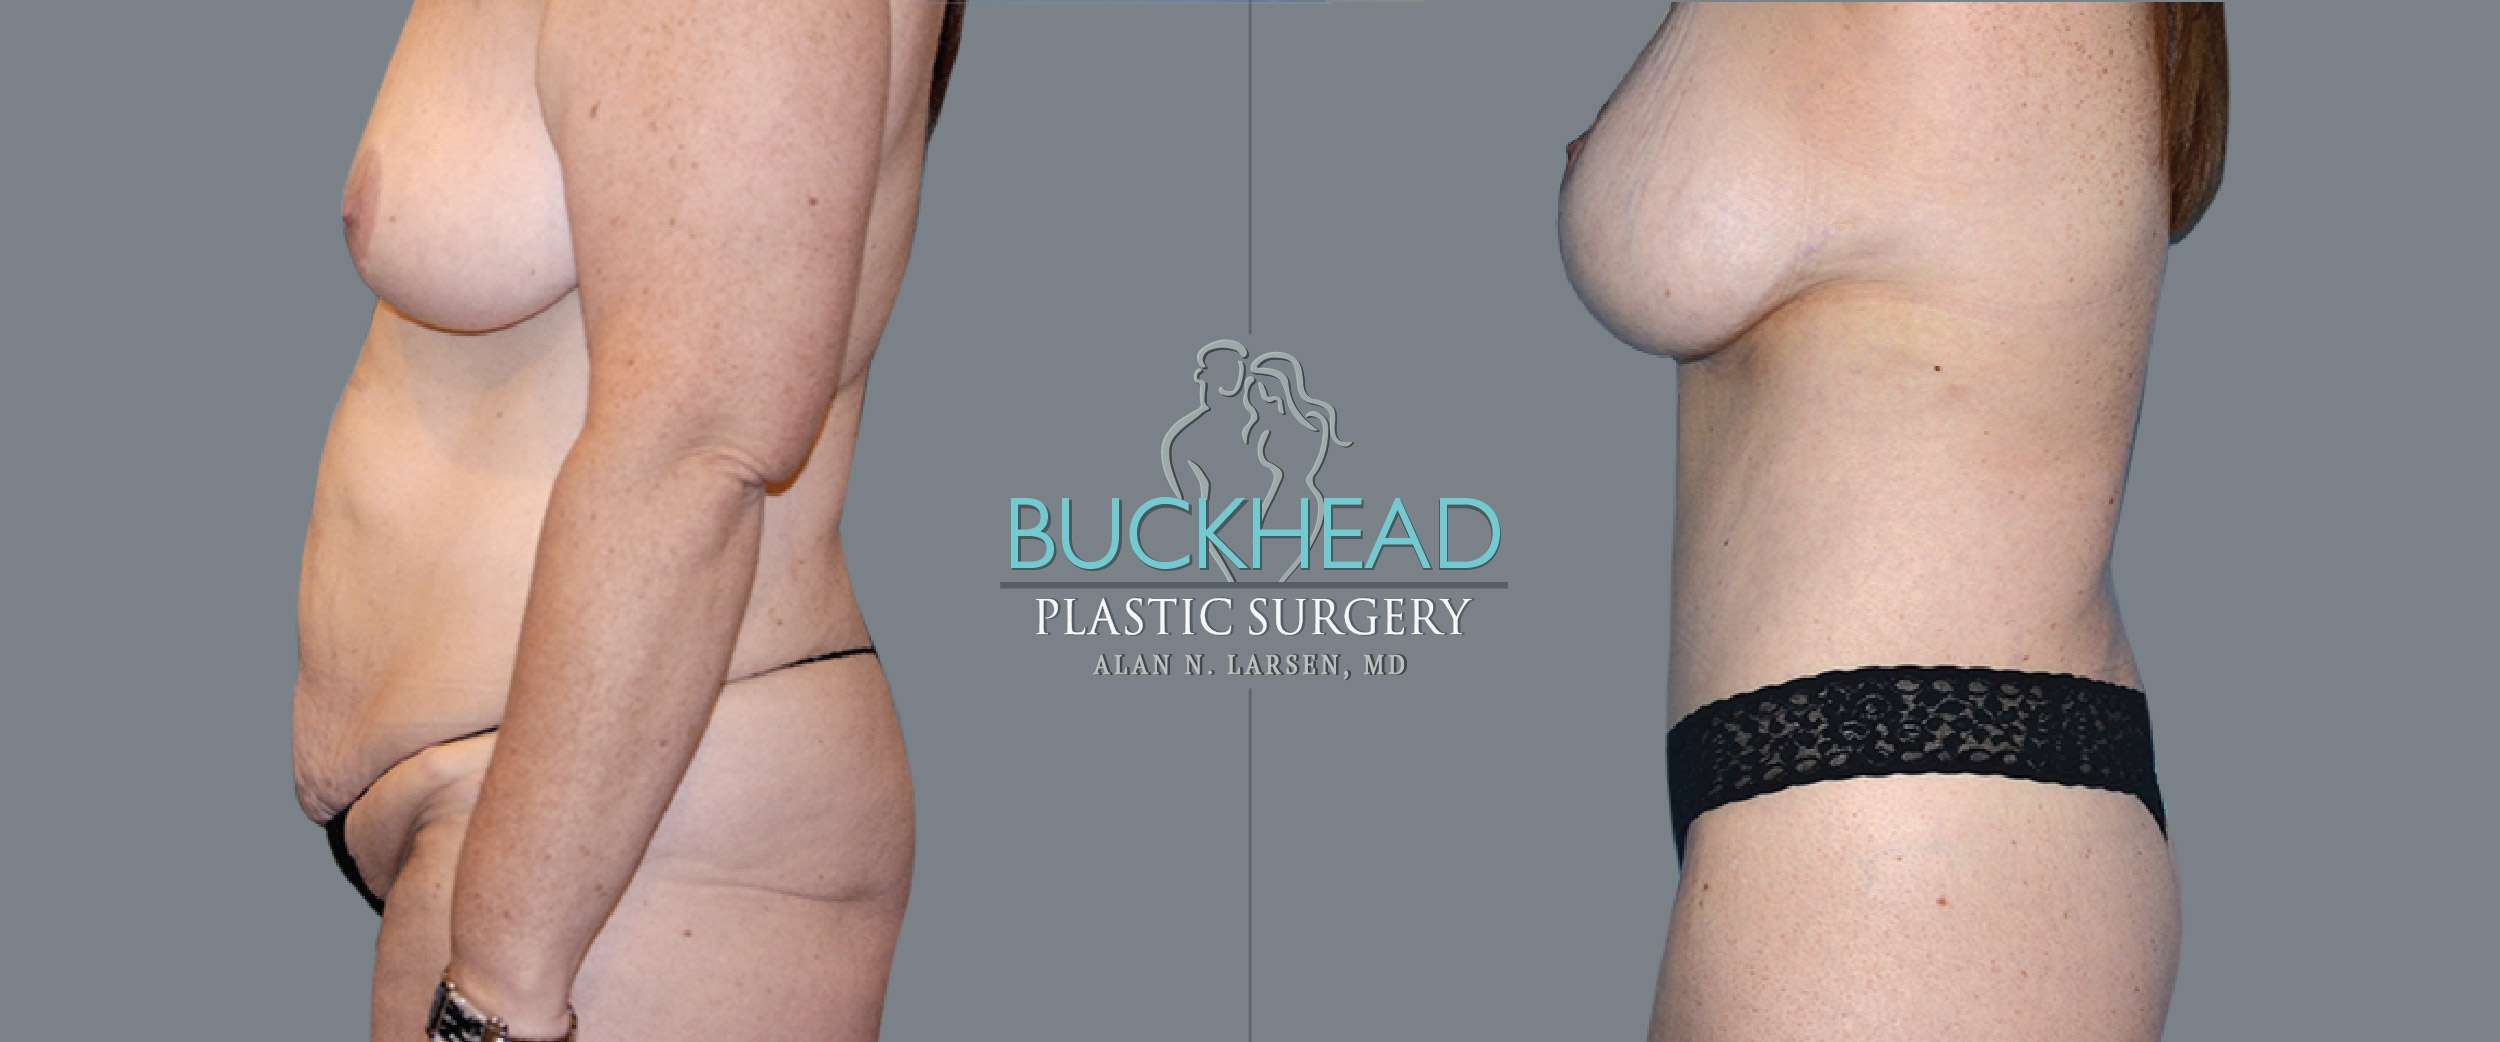 Before and After Photo gallery | Body Lift | Buckhead Plastic Surgery | Board-Certified Plastic Surgeon in Atlanta GA